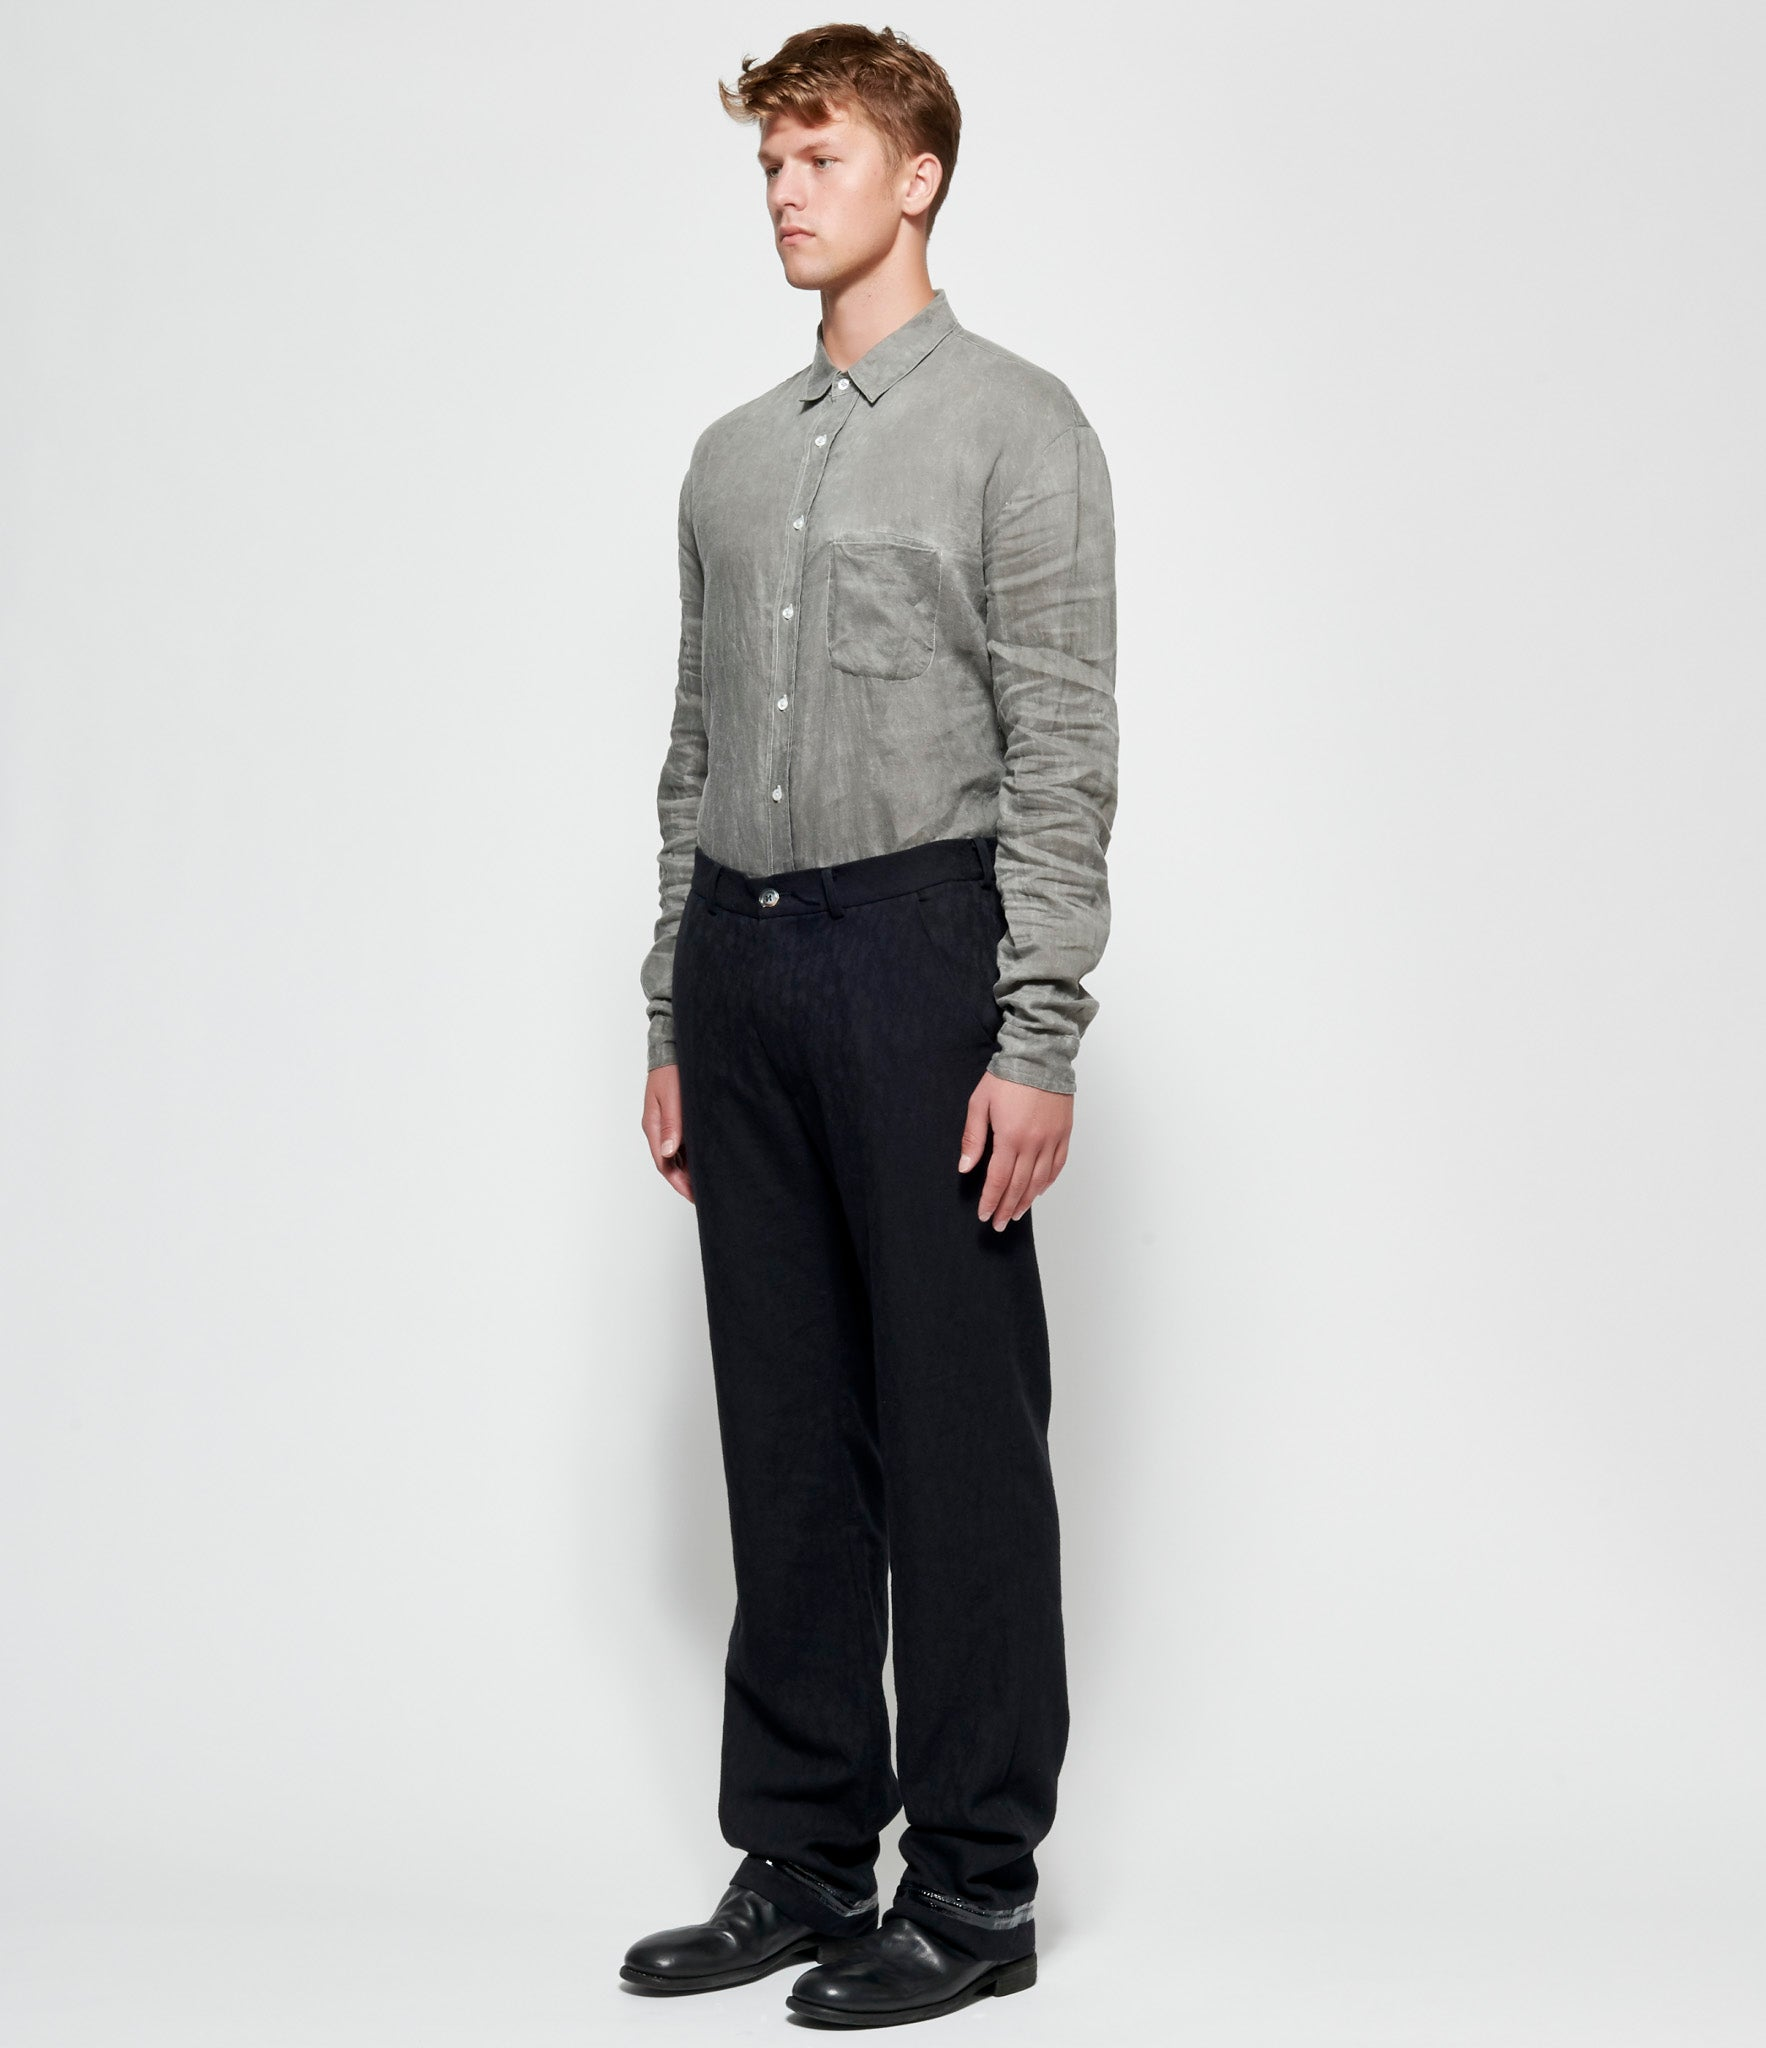 Sagittaire A Cotton Twill Taped Seam Hem Trousers